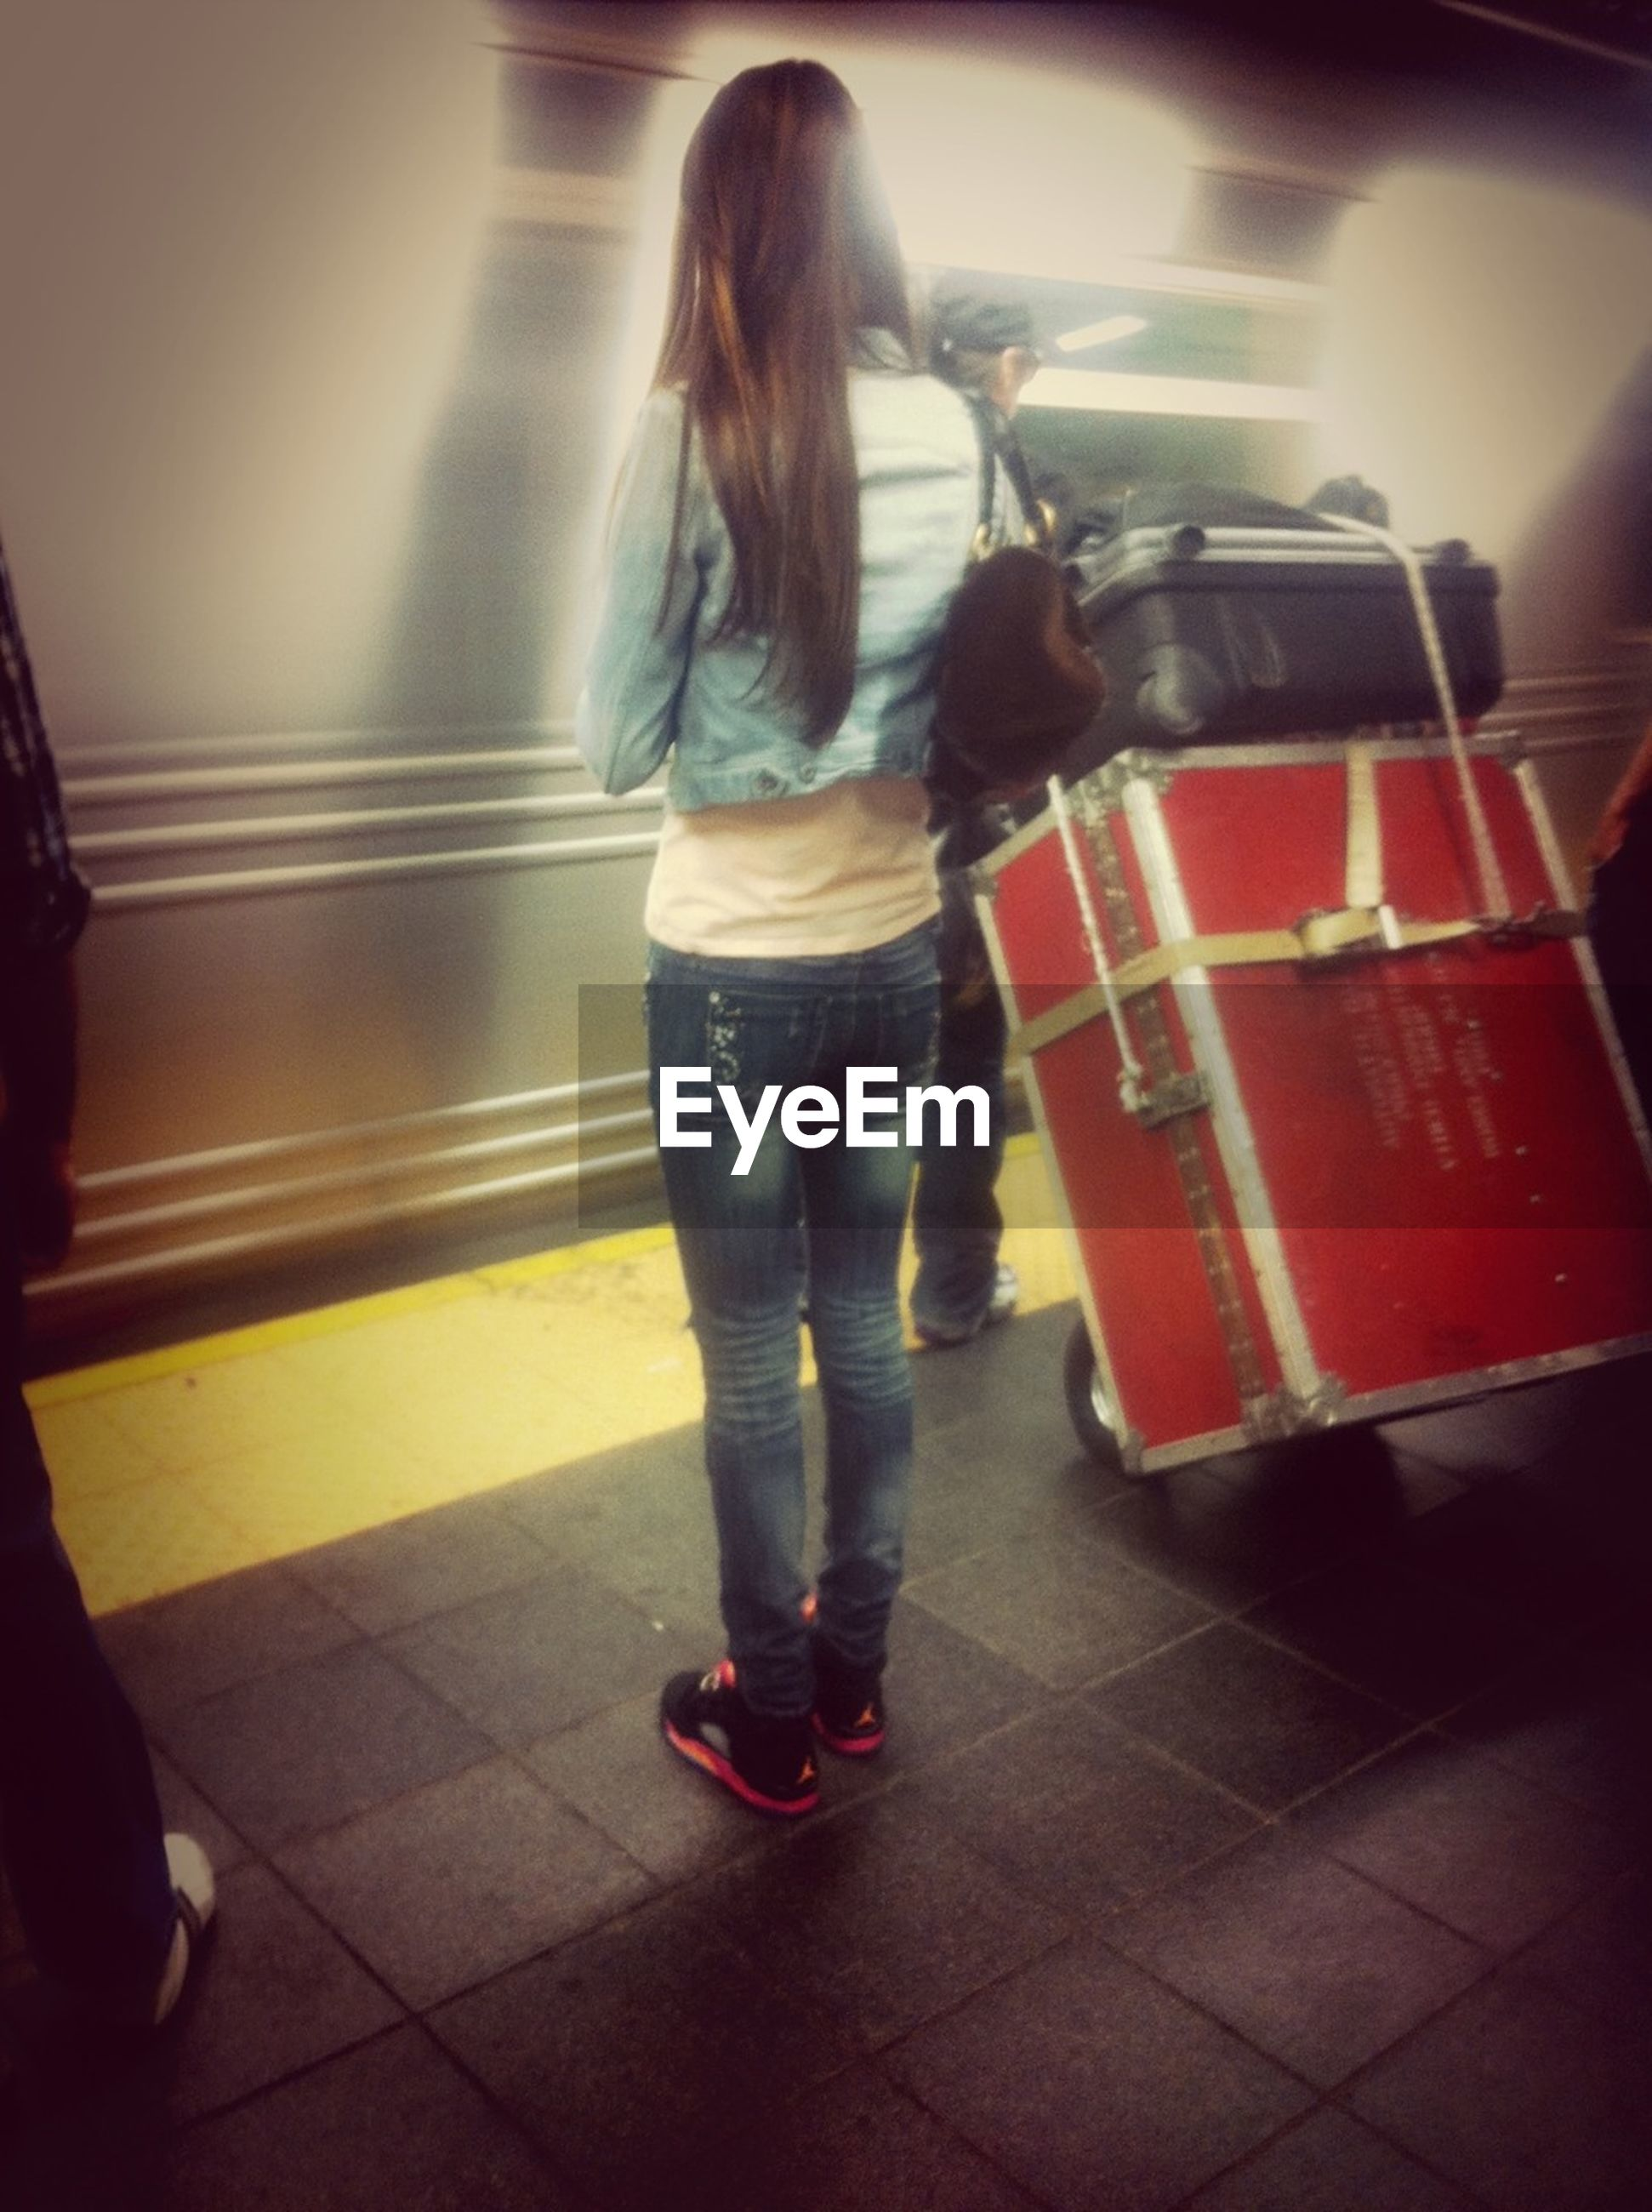 indoors, lifestyles, rear view, person, full length, standing, leisure activity, casual clothing, men, transportation, walking, blurred motion, on the move, travel, motion, red, public transportation, passenger